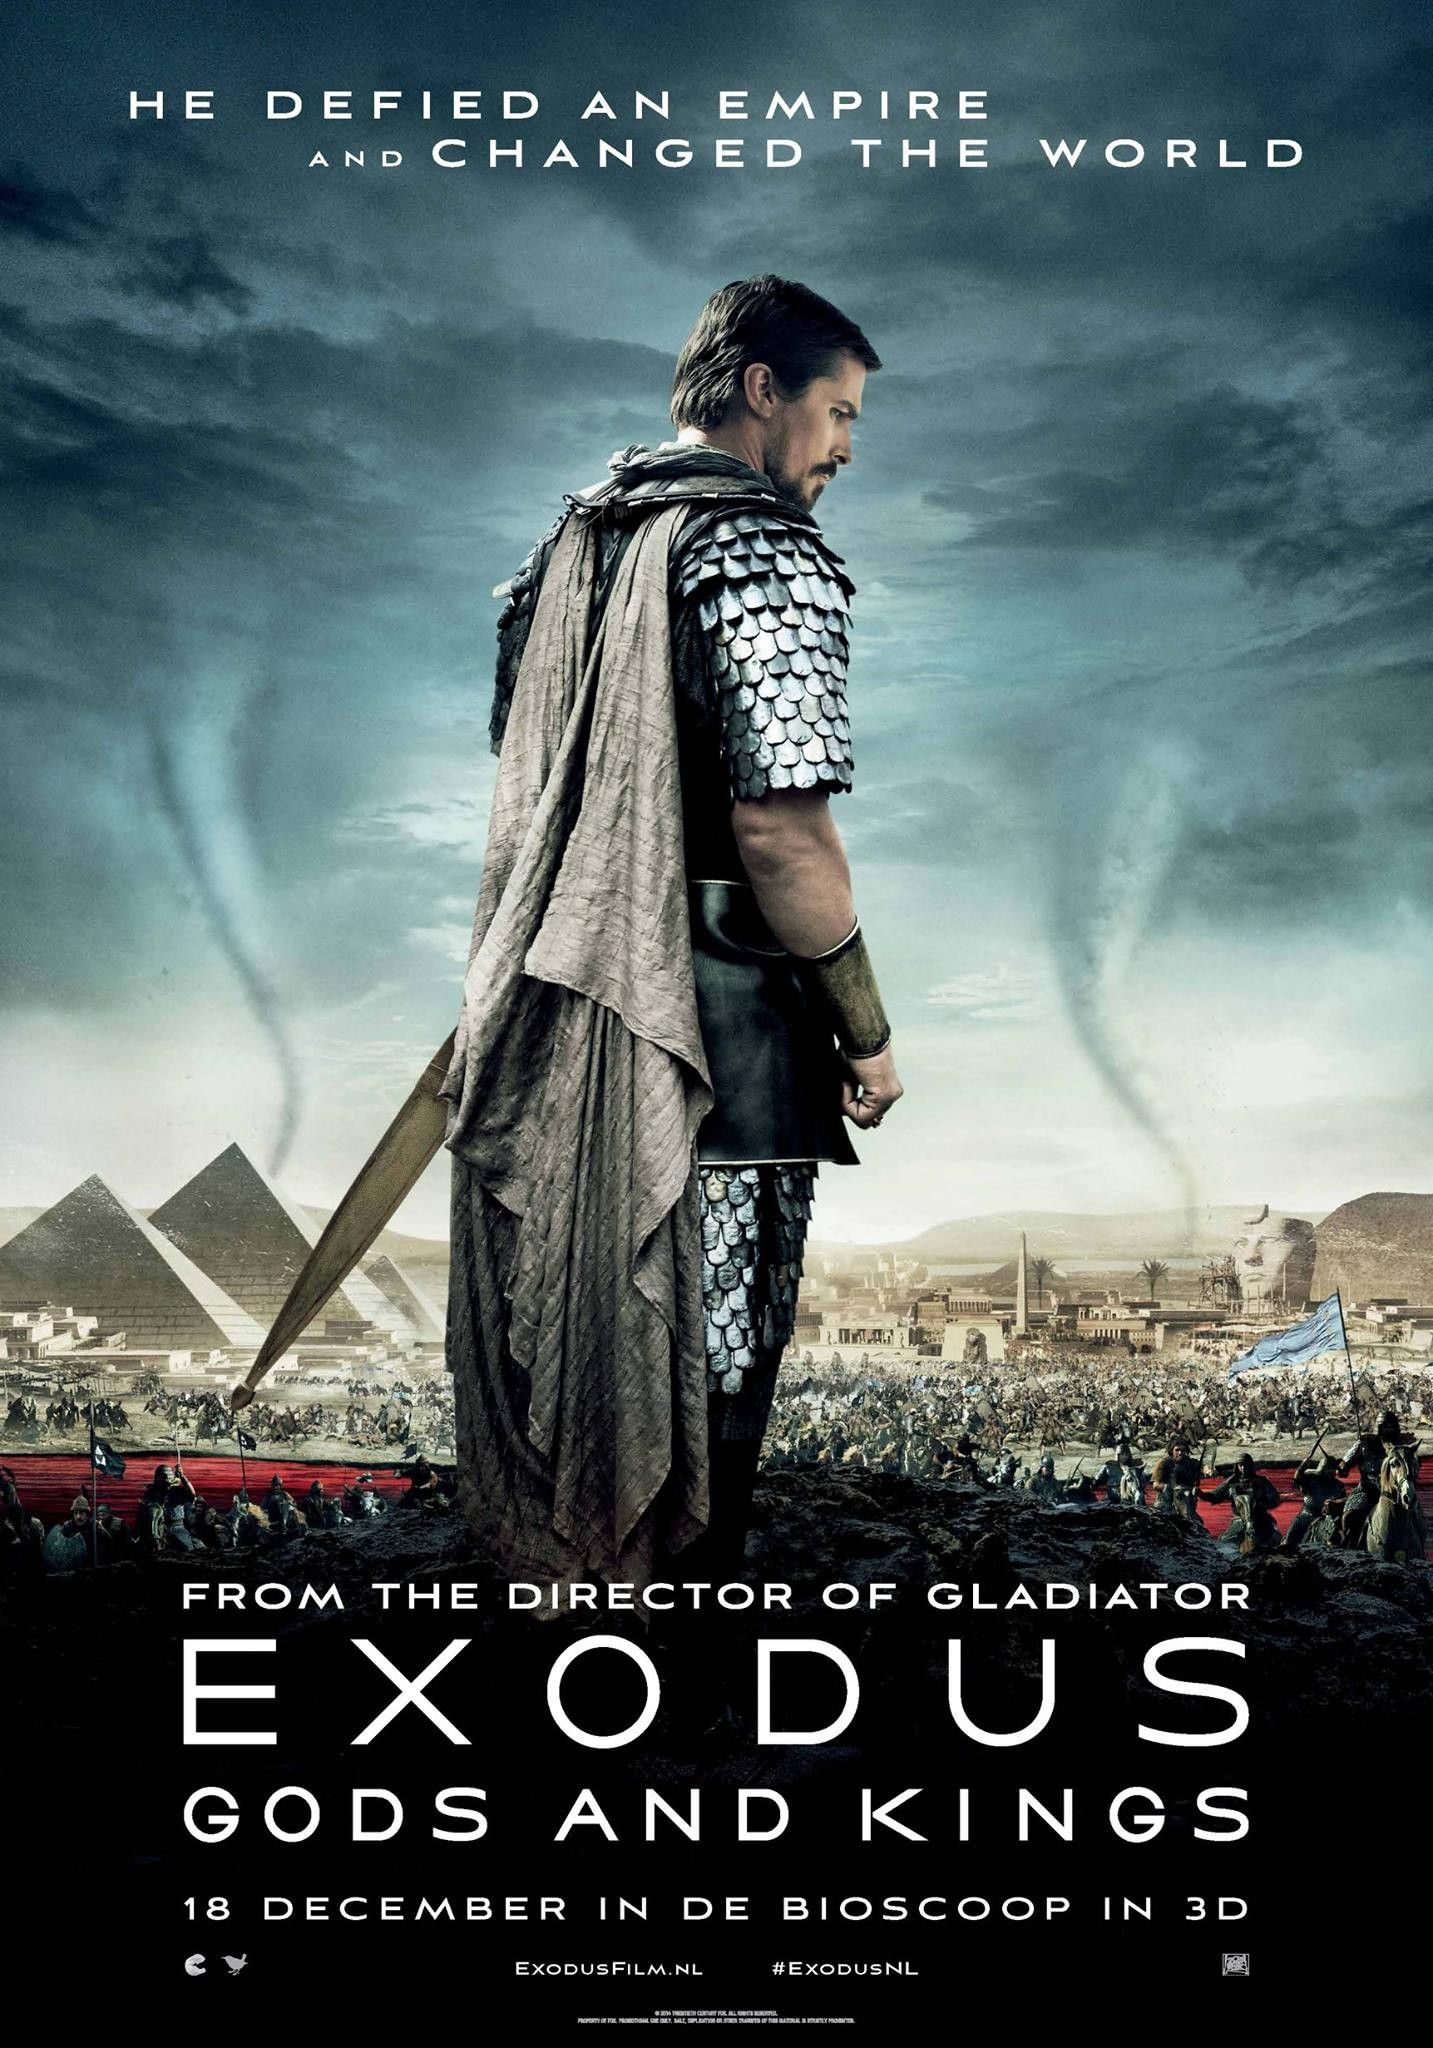 Return To The Main Poster Page For Exodus Gods And Kings Film